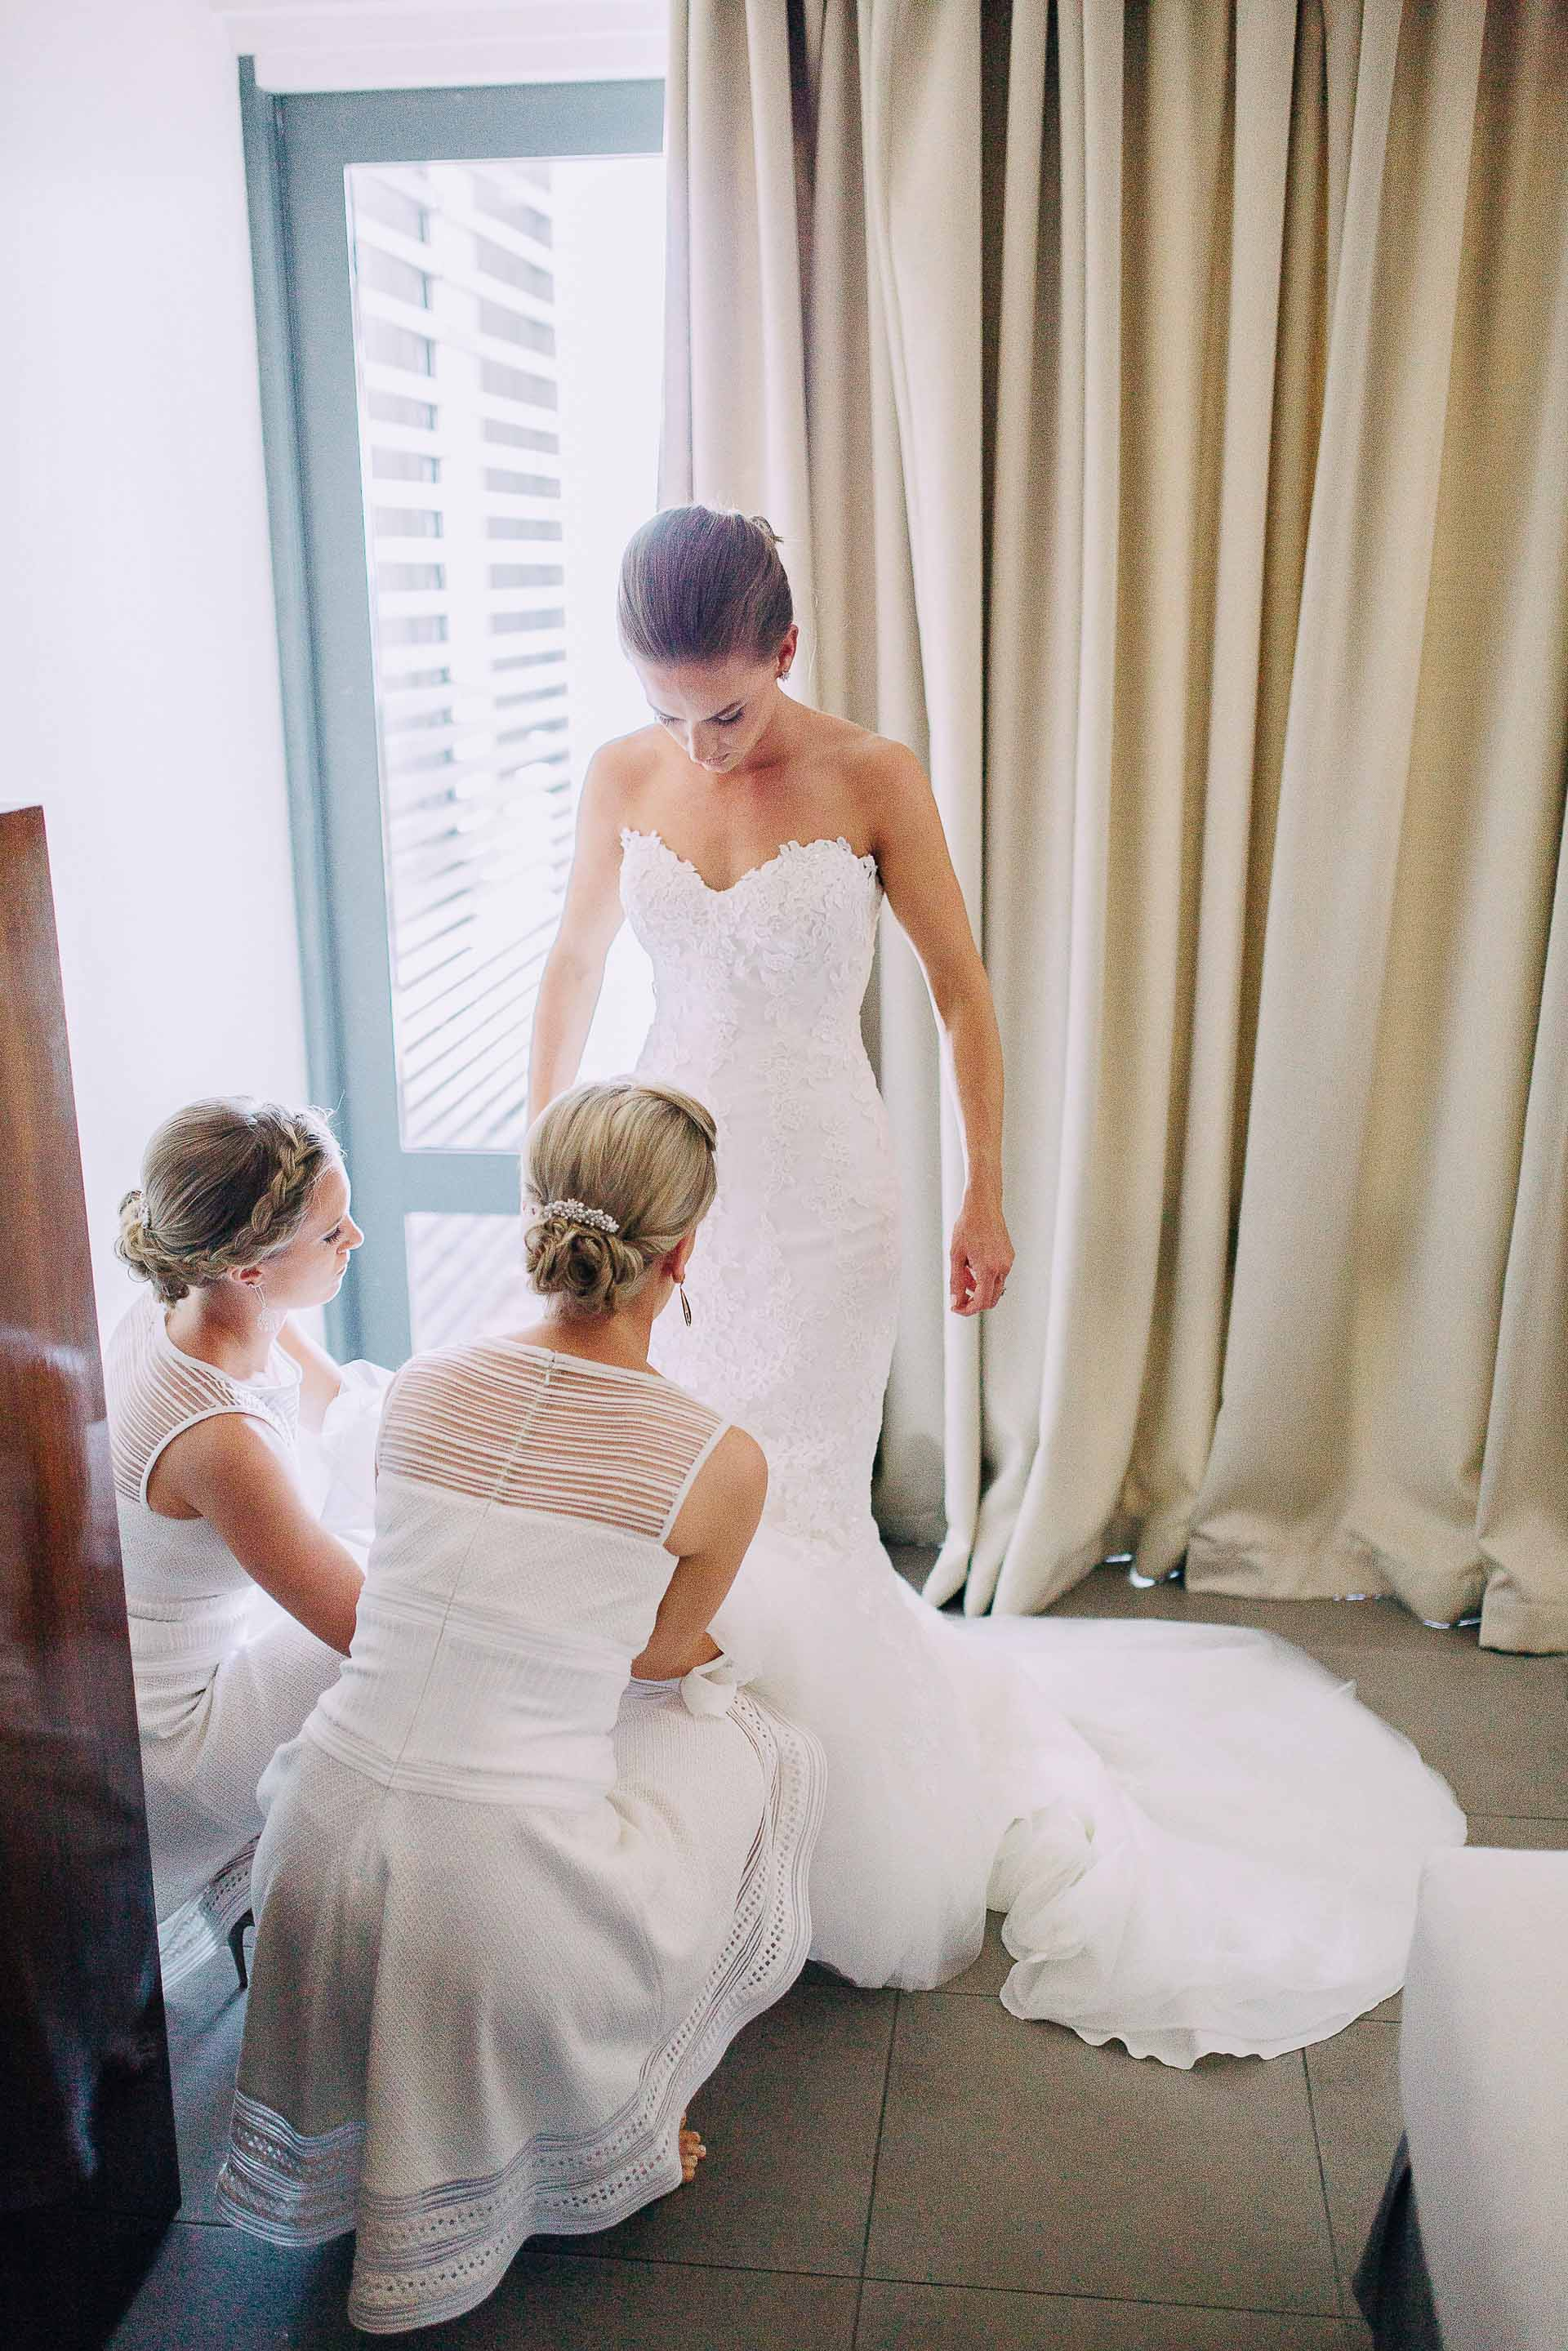 Bridesmaids help the Bride with her wedding dress.